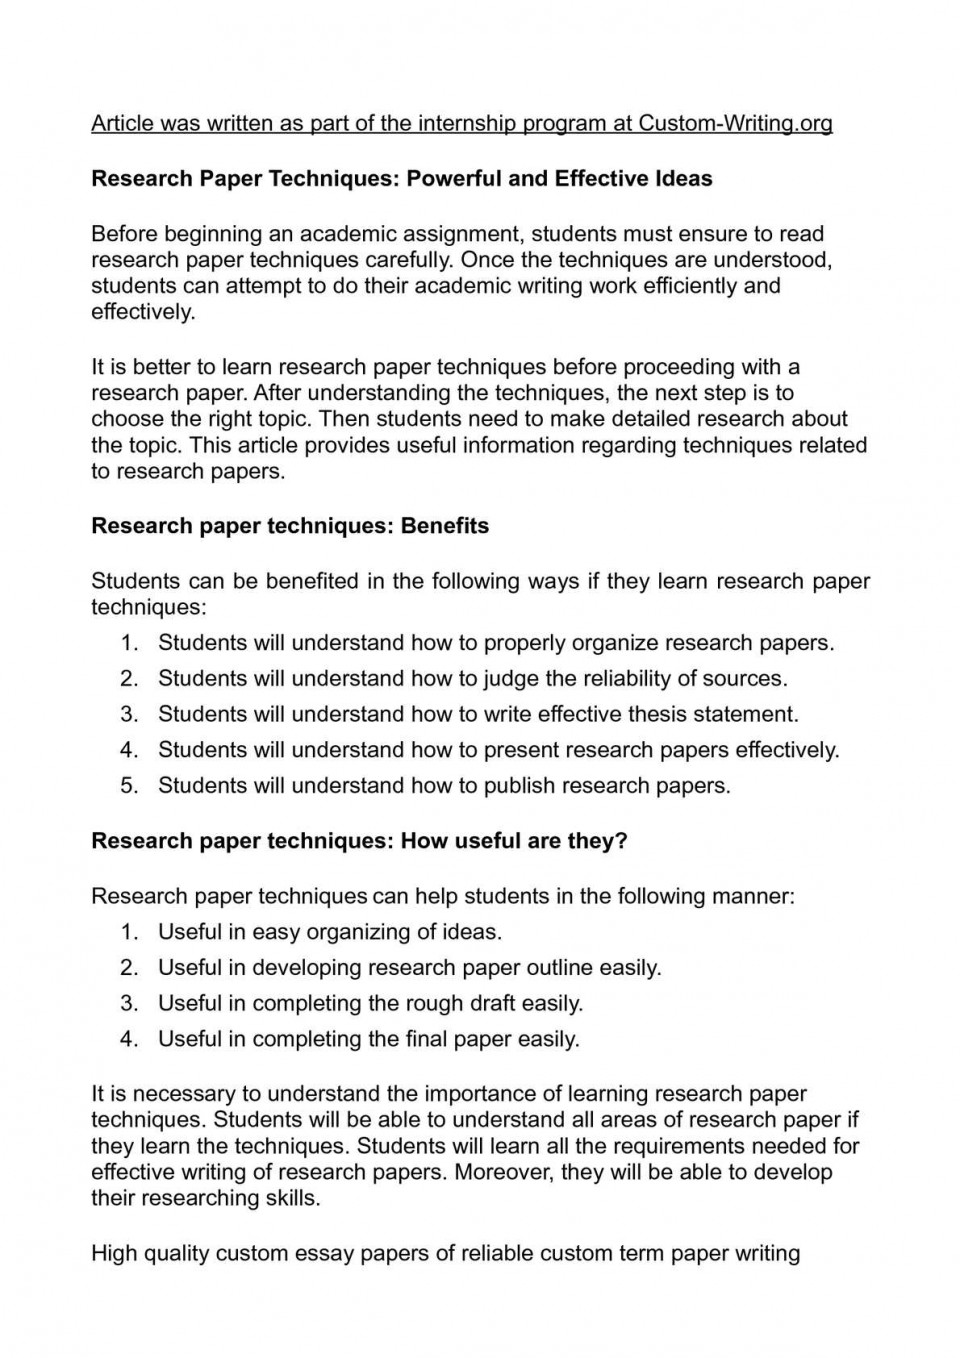 003 Ideas For Research Paper Fascinating Papers In Computer Science Middle School 960